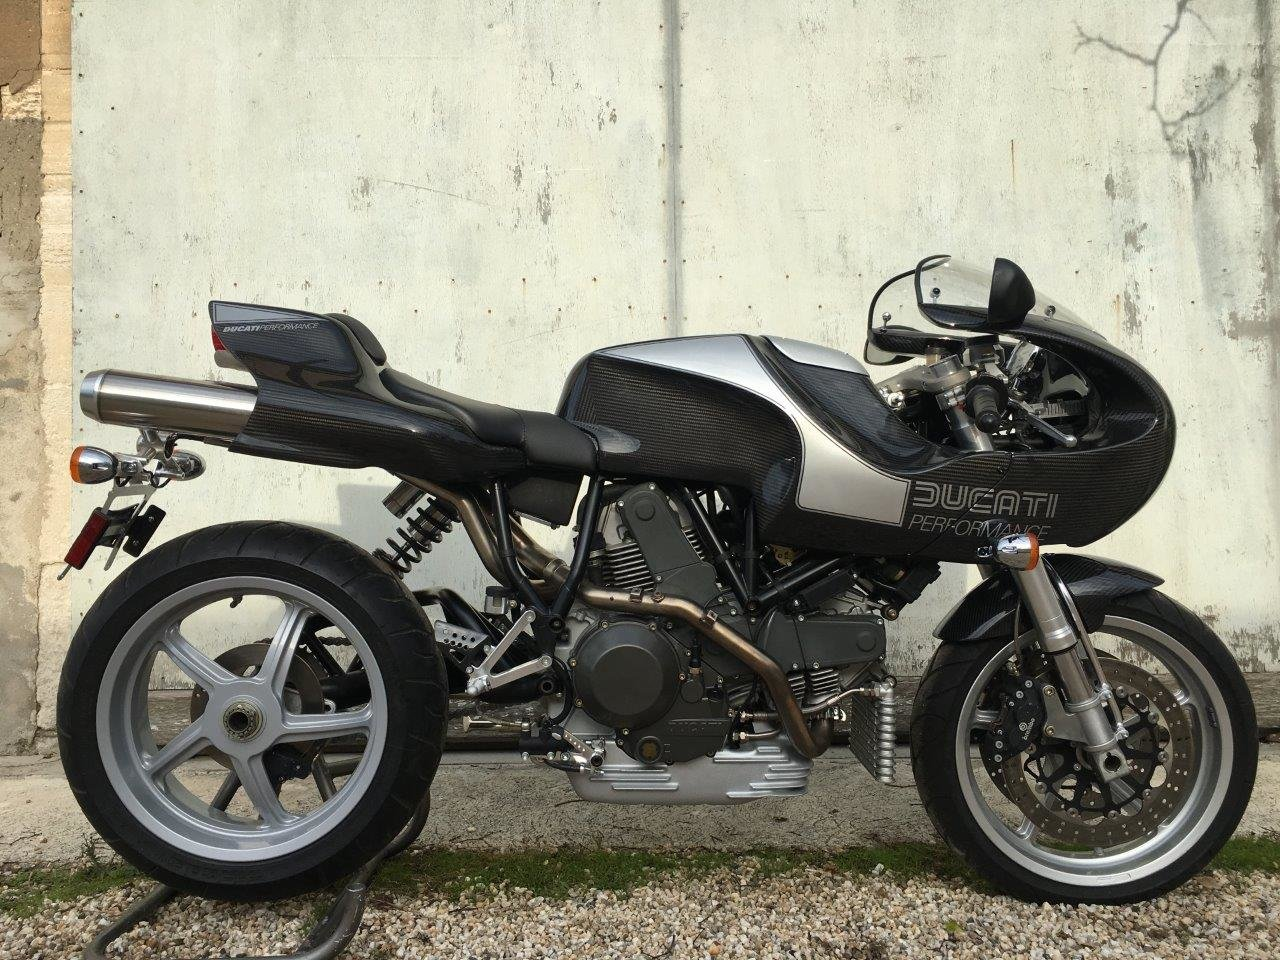 1999 Ducati 900 MHE prototype, chassis # 0001 ! For Sale (picture 3 of 6)